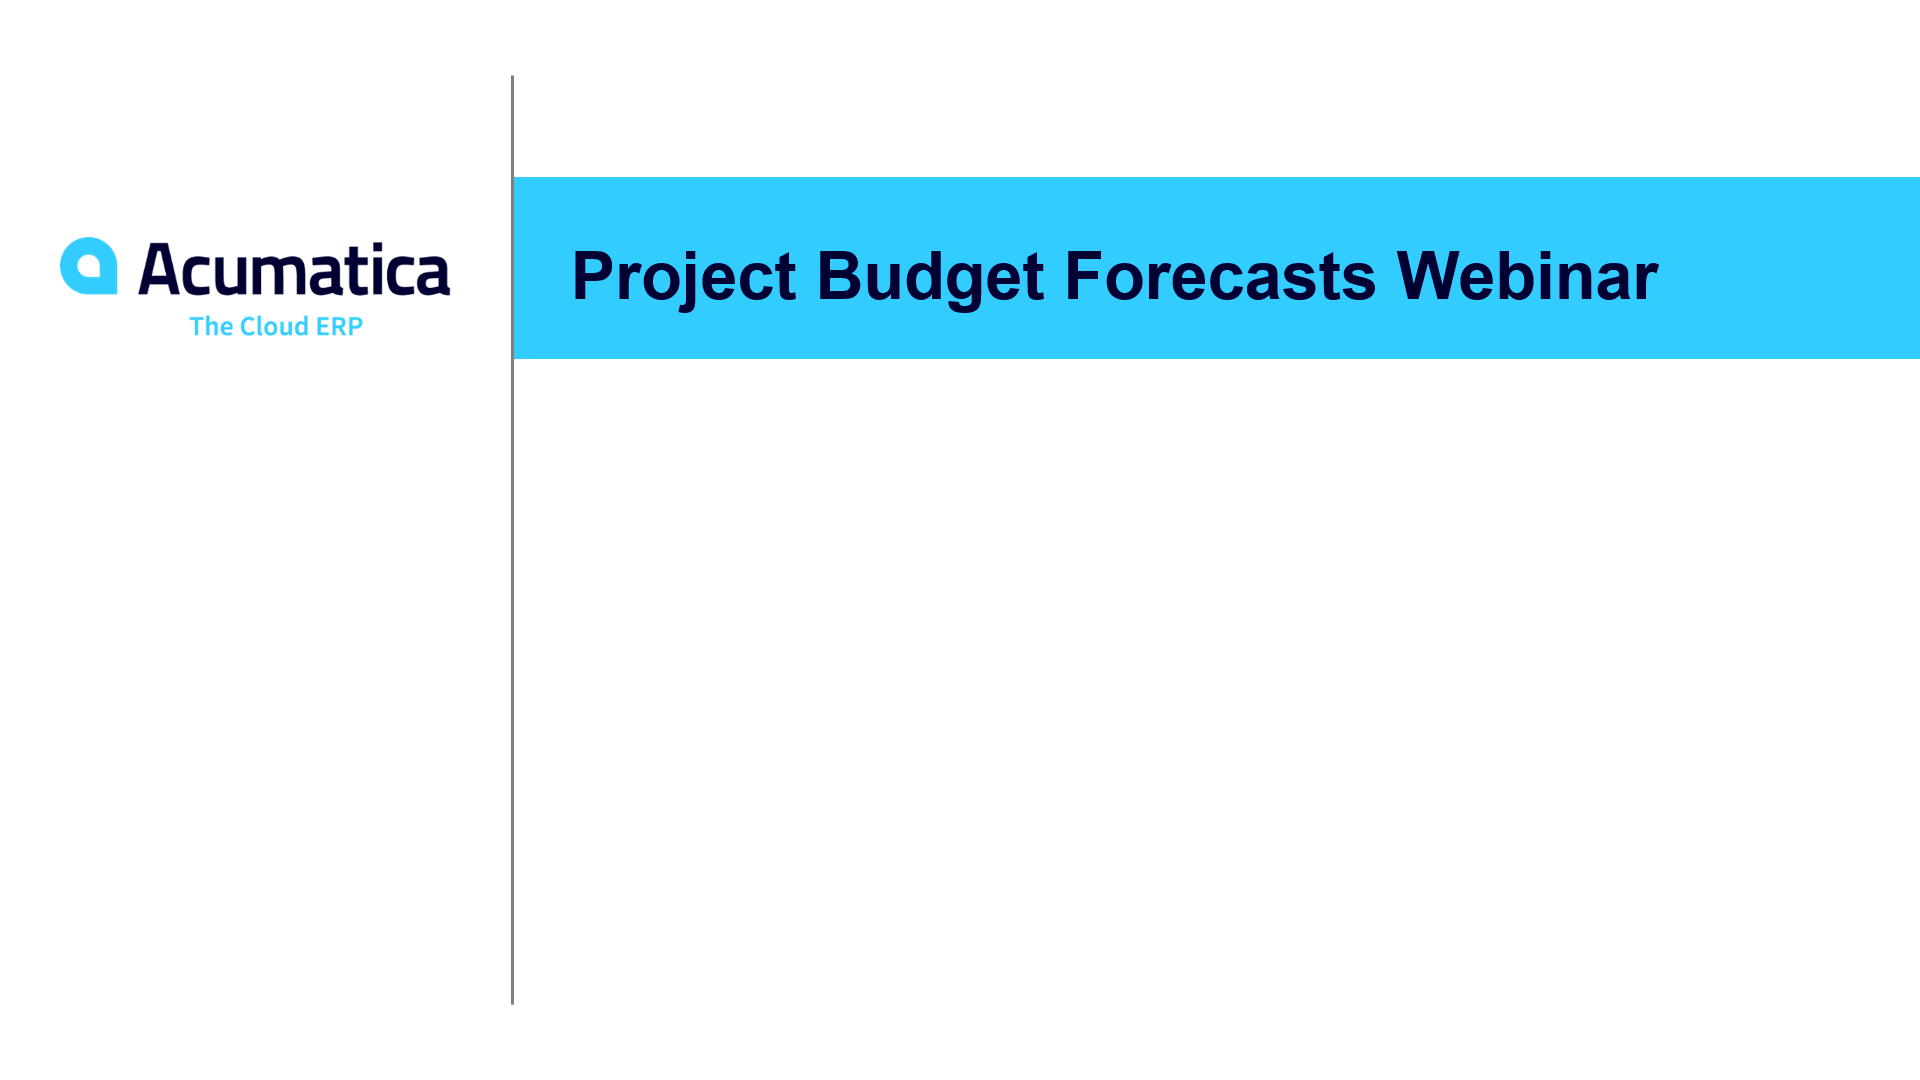 Project Budget Forecasts Webinar (May 2019)